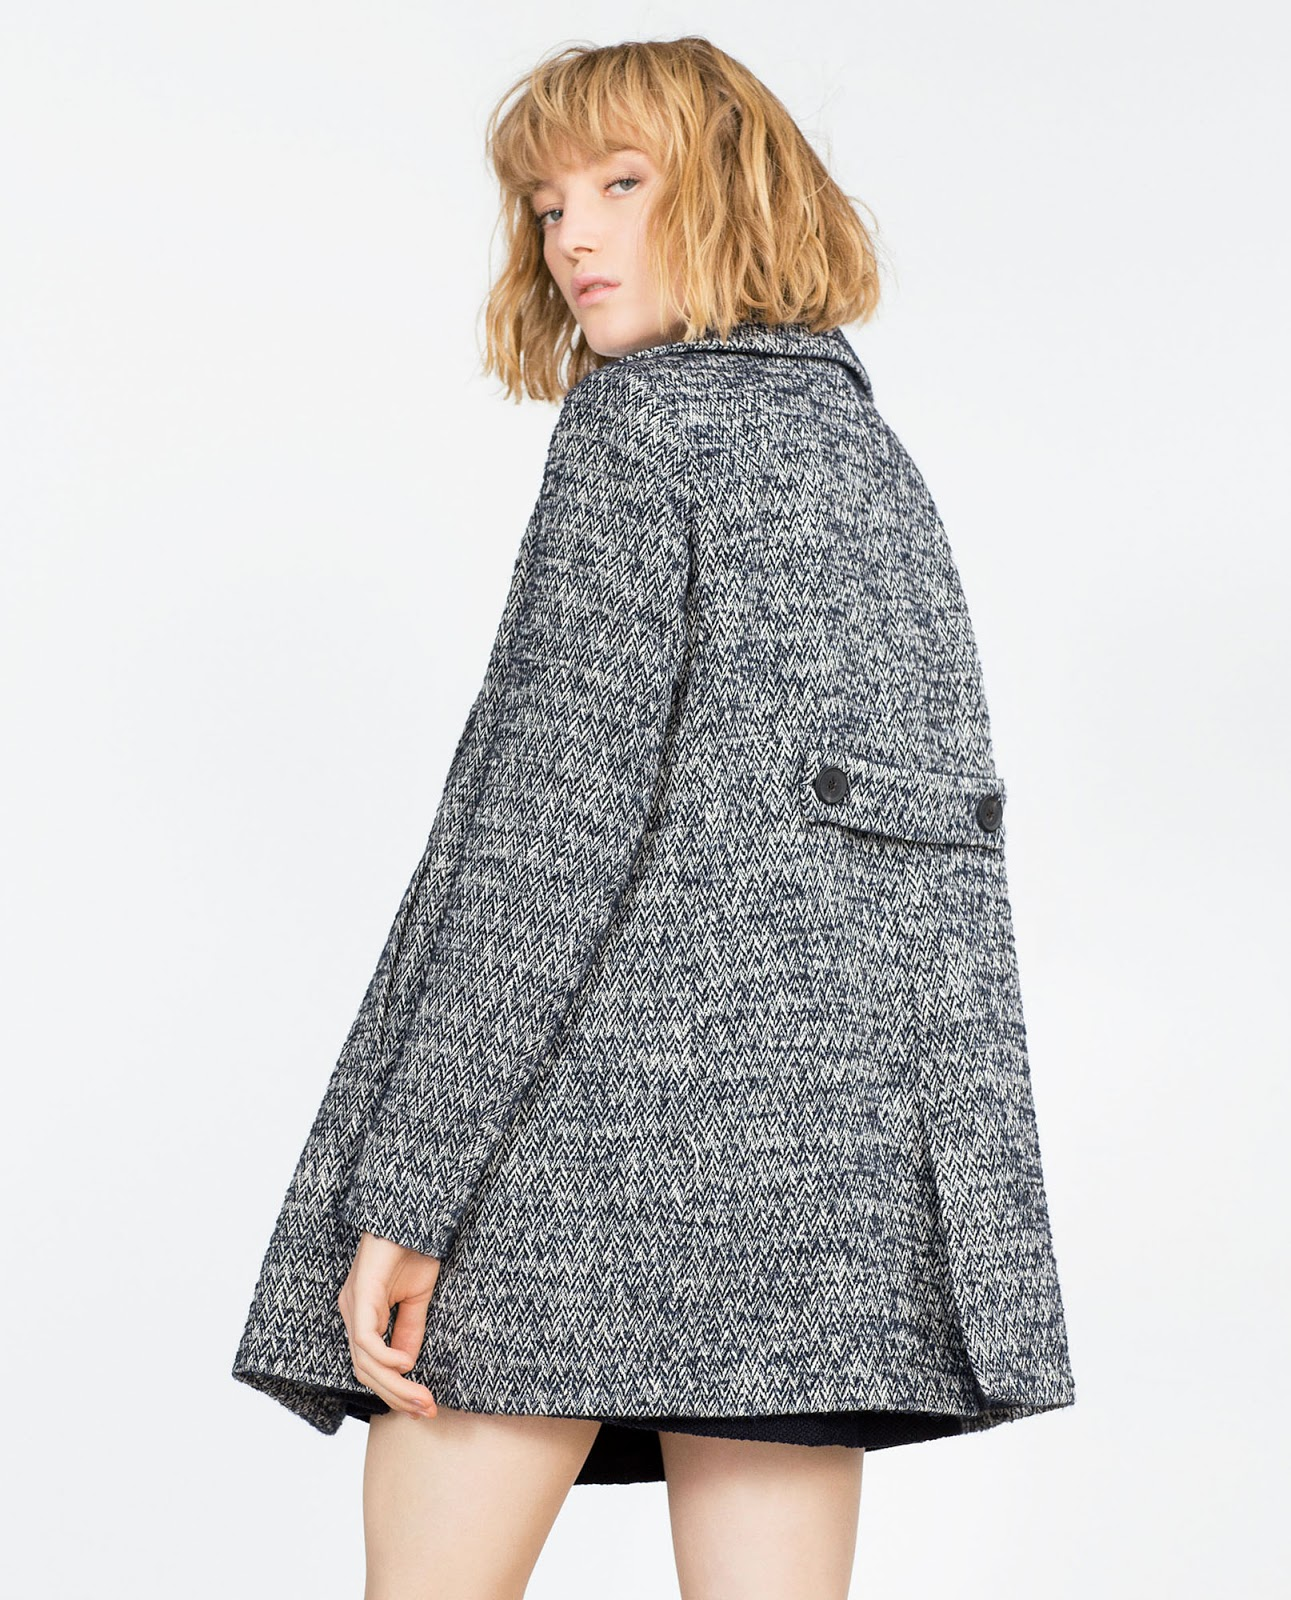 Eniwhere Fashion - Zara coat FW2015-16